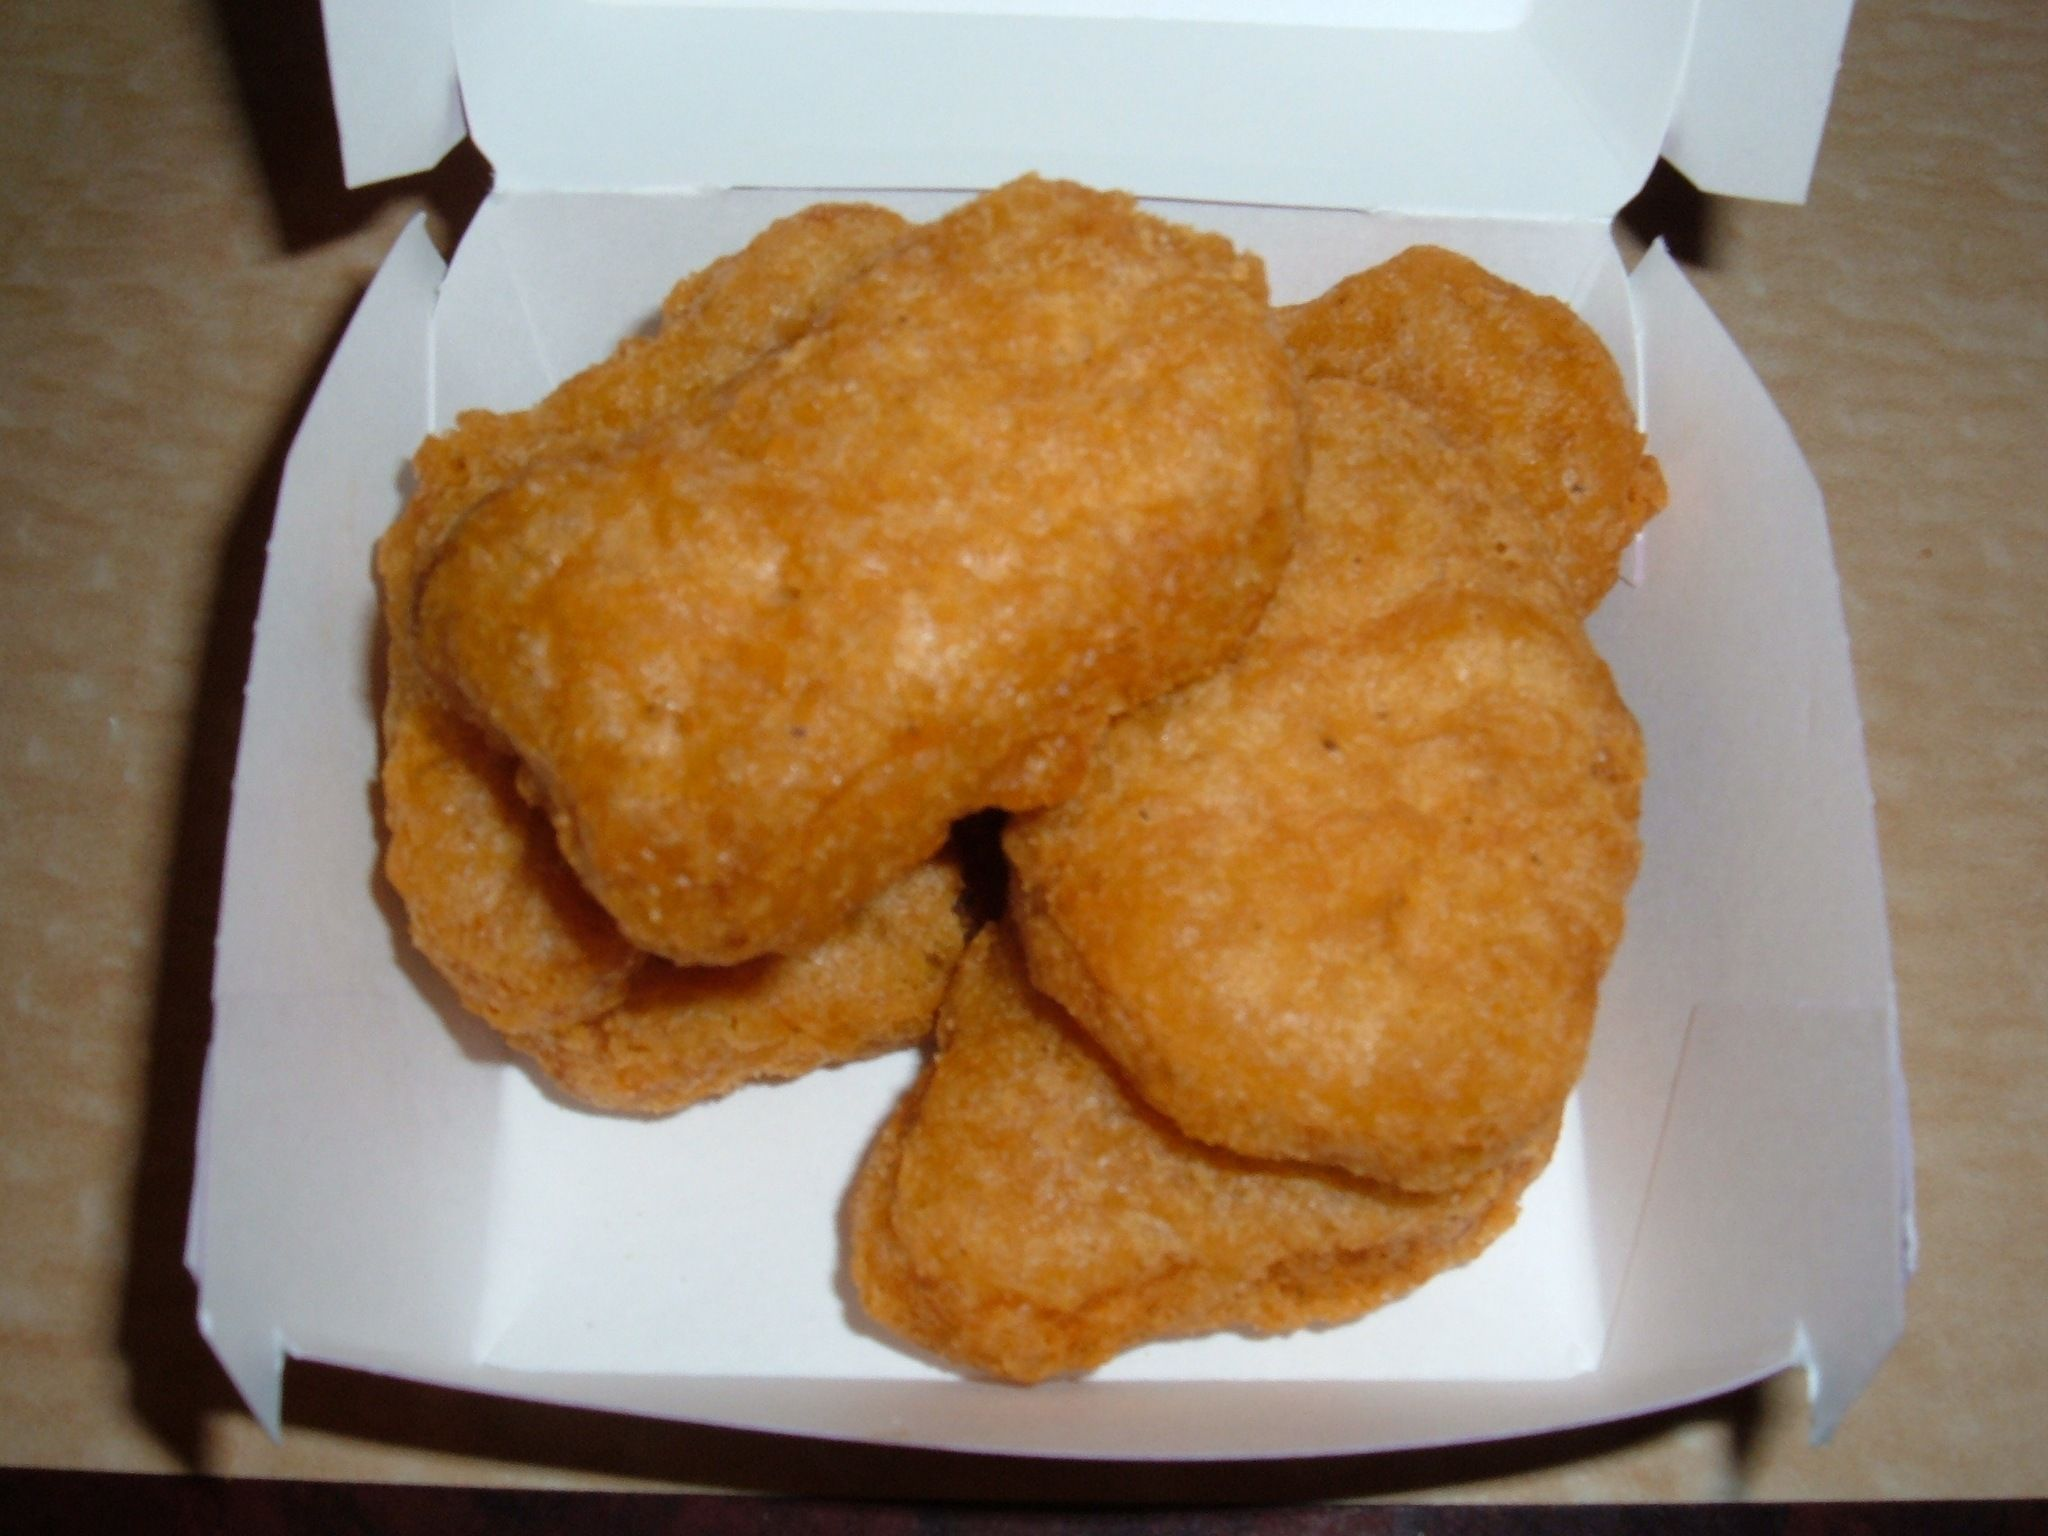 Garbagein Garbageout The Four Chicken Mcnuggets Did You Know There Are 4 Different Shapes For The Mcdonald S Chicken Mcnuggets Well Now You Do The Four S